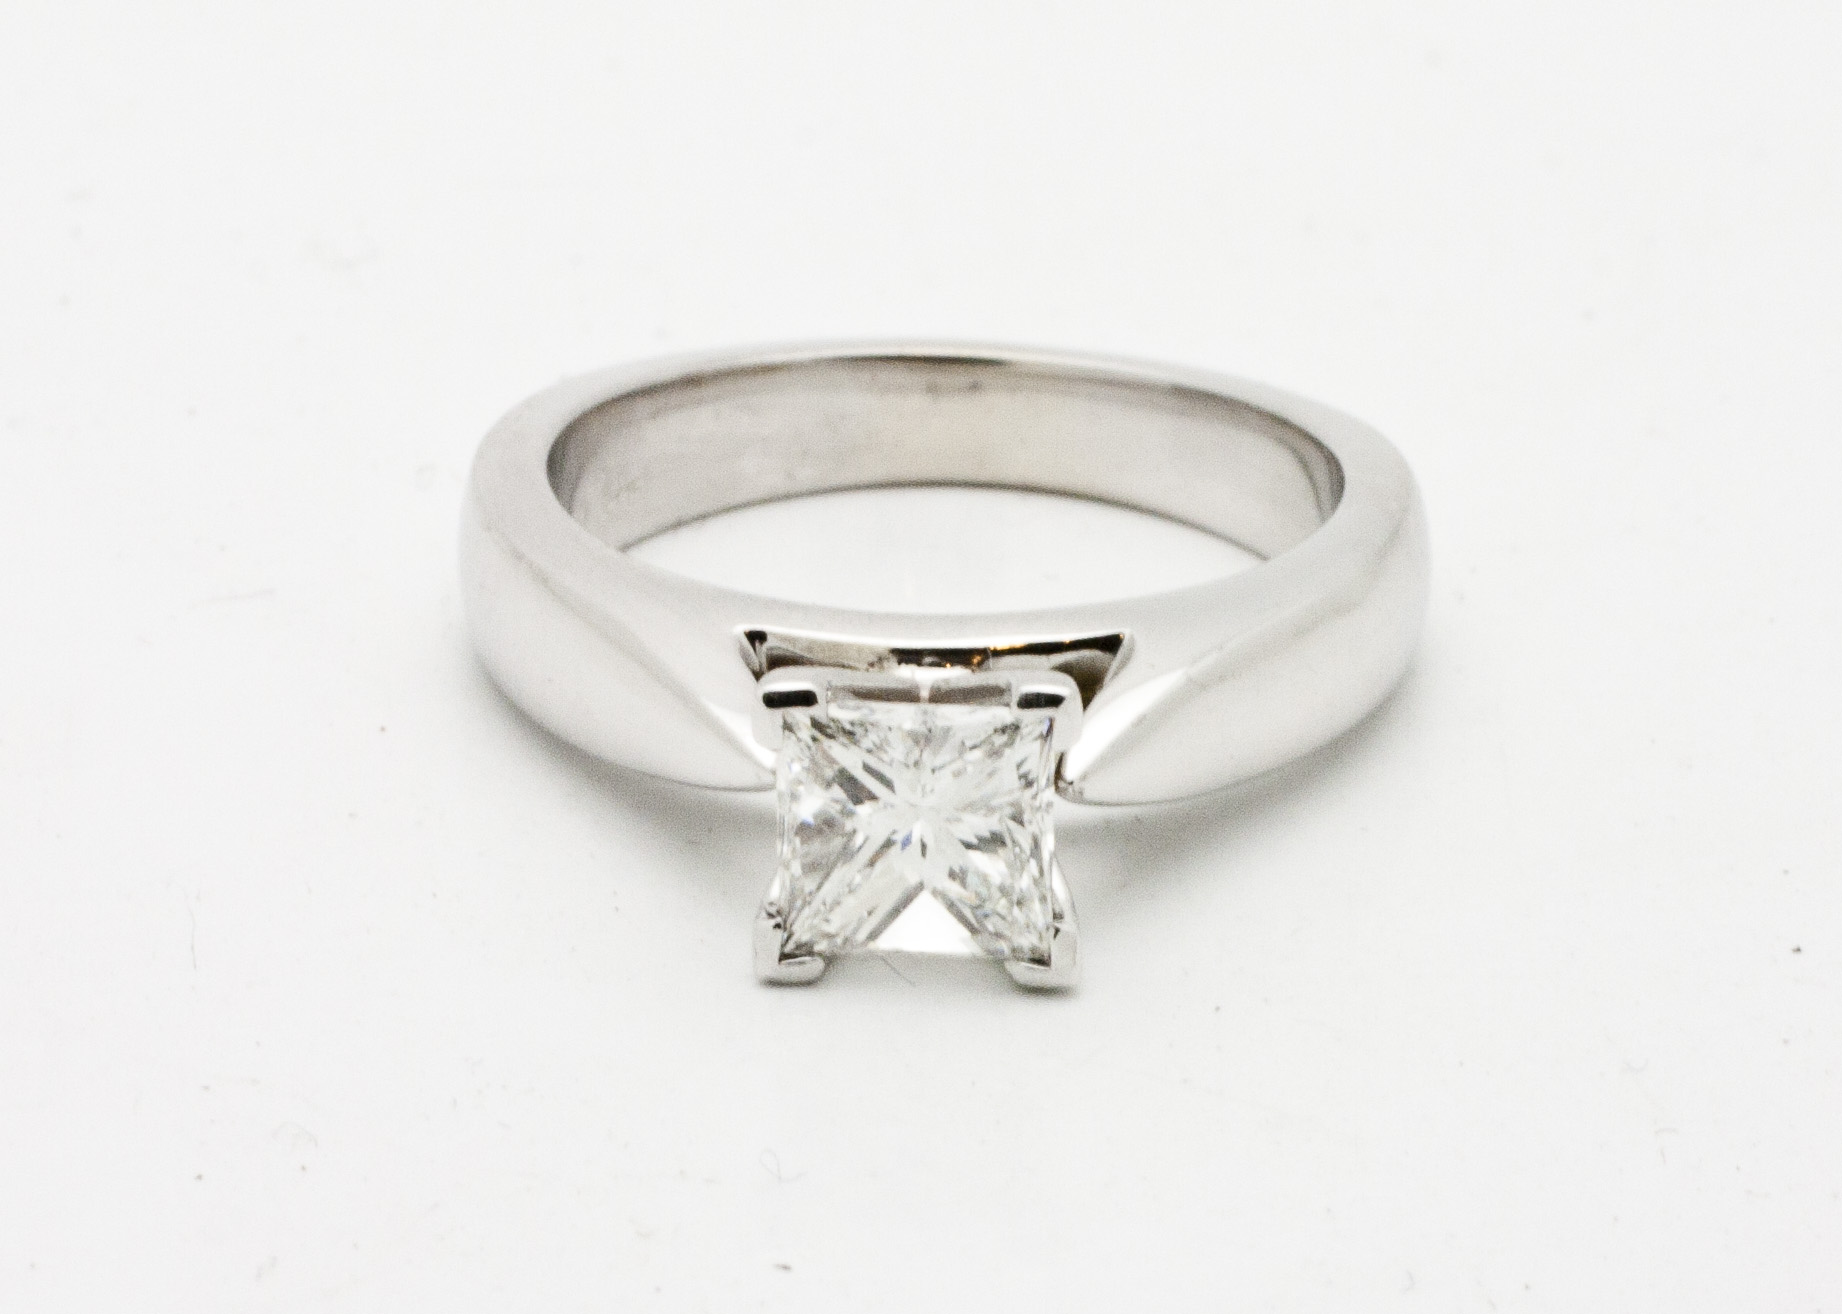 1.00ct princes cut diamond solitaire set in 18kt white gold.  Starting at $6200 for this size stone andVS-2 clarity G colour  Can be customizable with any stone, size, metal etc.